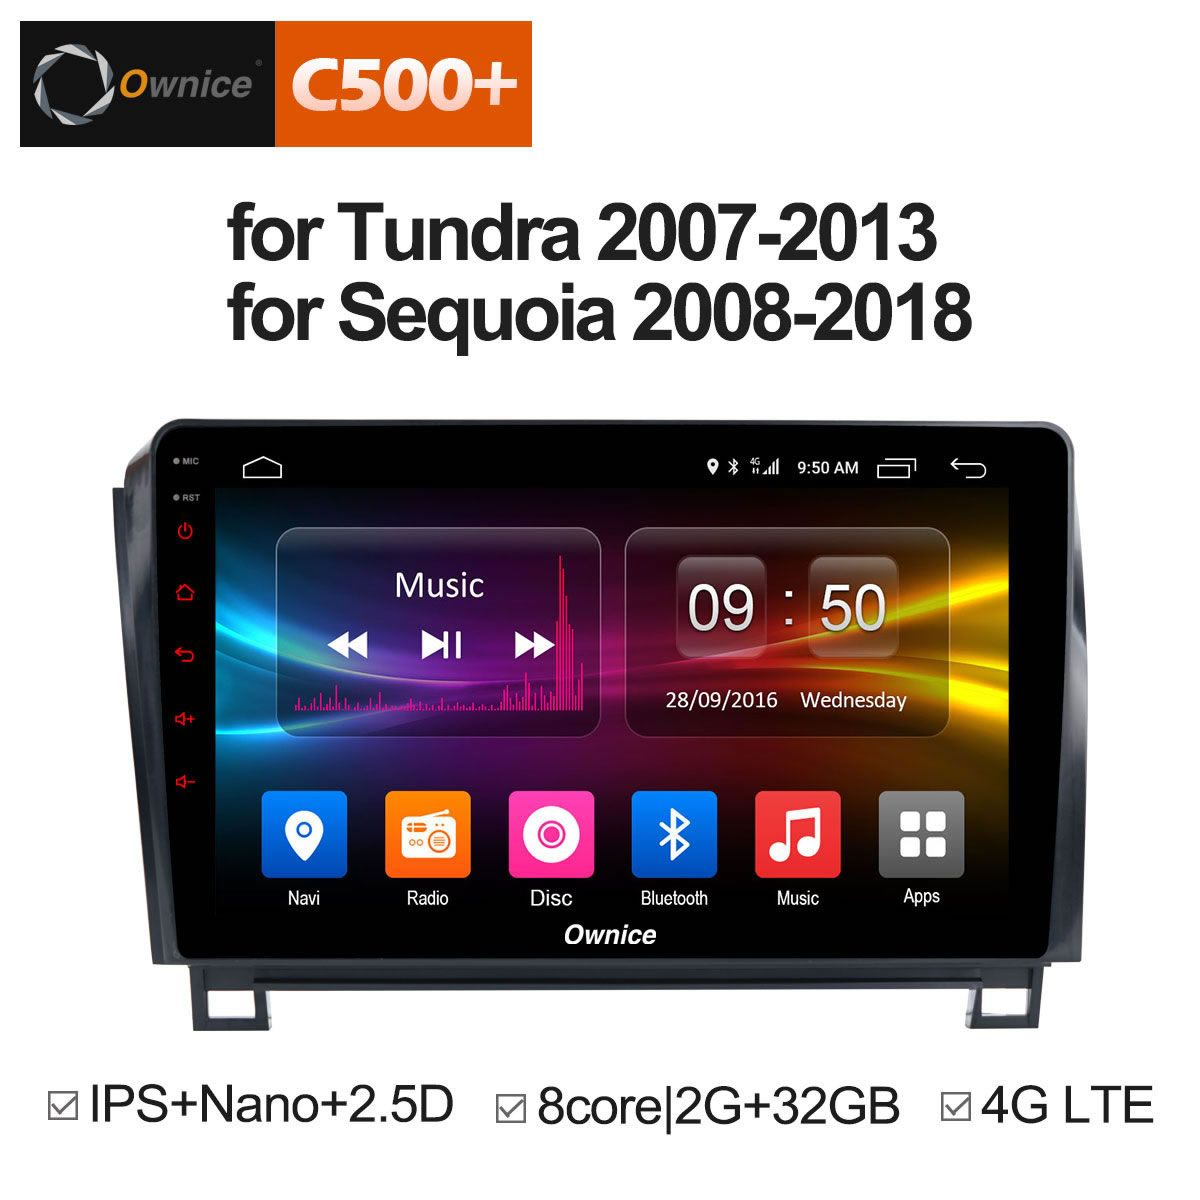 Ownice C500+ G10 Android 8.1 8 Core Car DVD GPS For Toyota Tundra 2007 - 2013 Sequoia 2008 - 2018 Stereo Radio Audio 4G OBD DVR